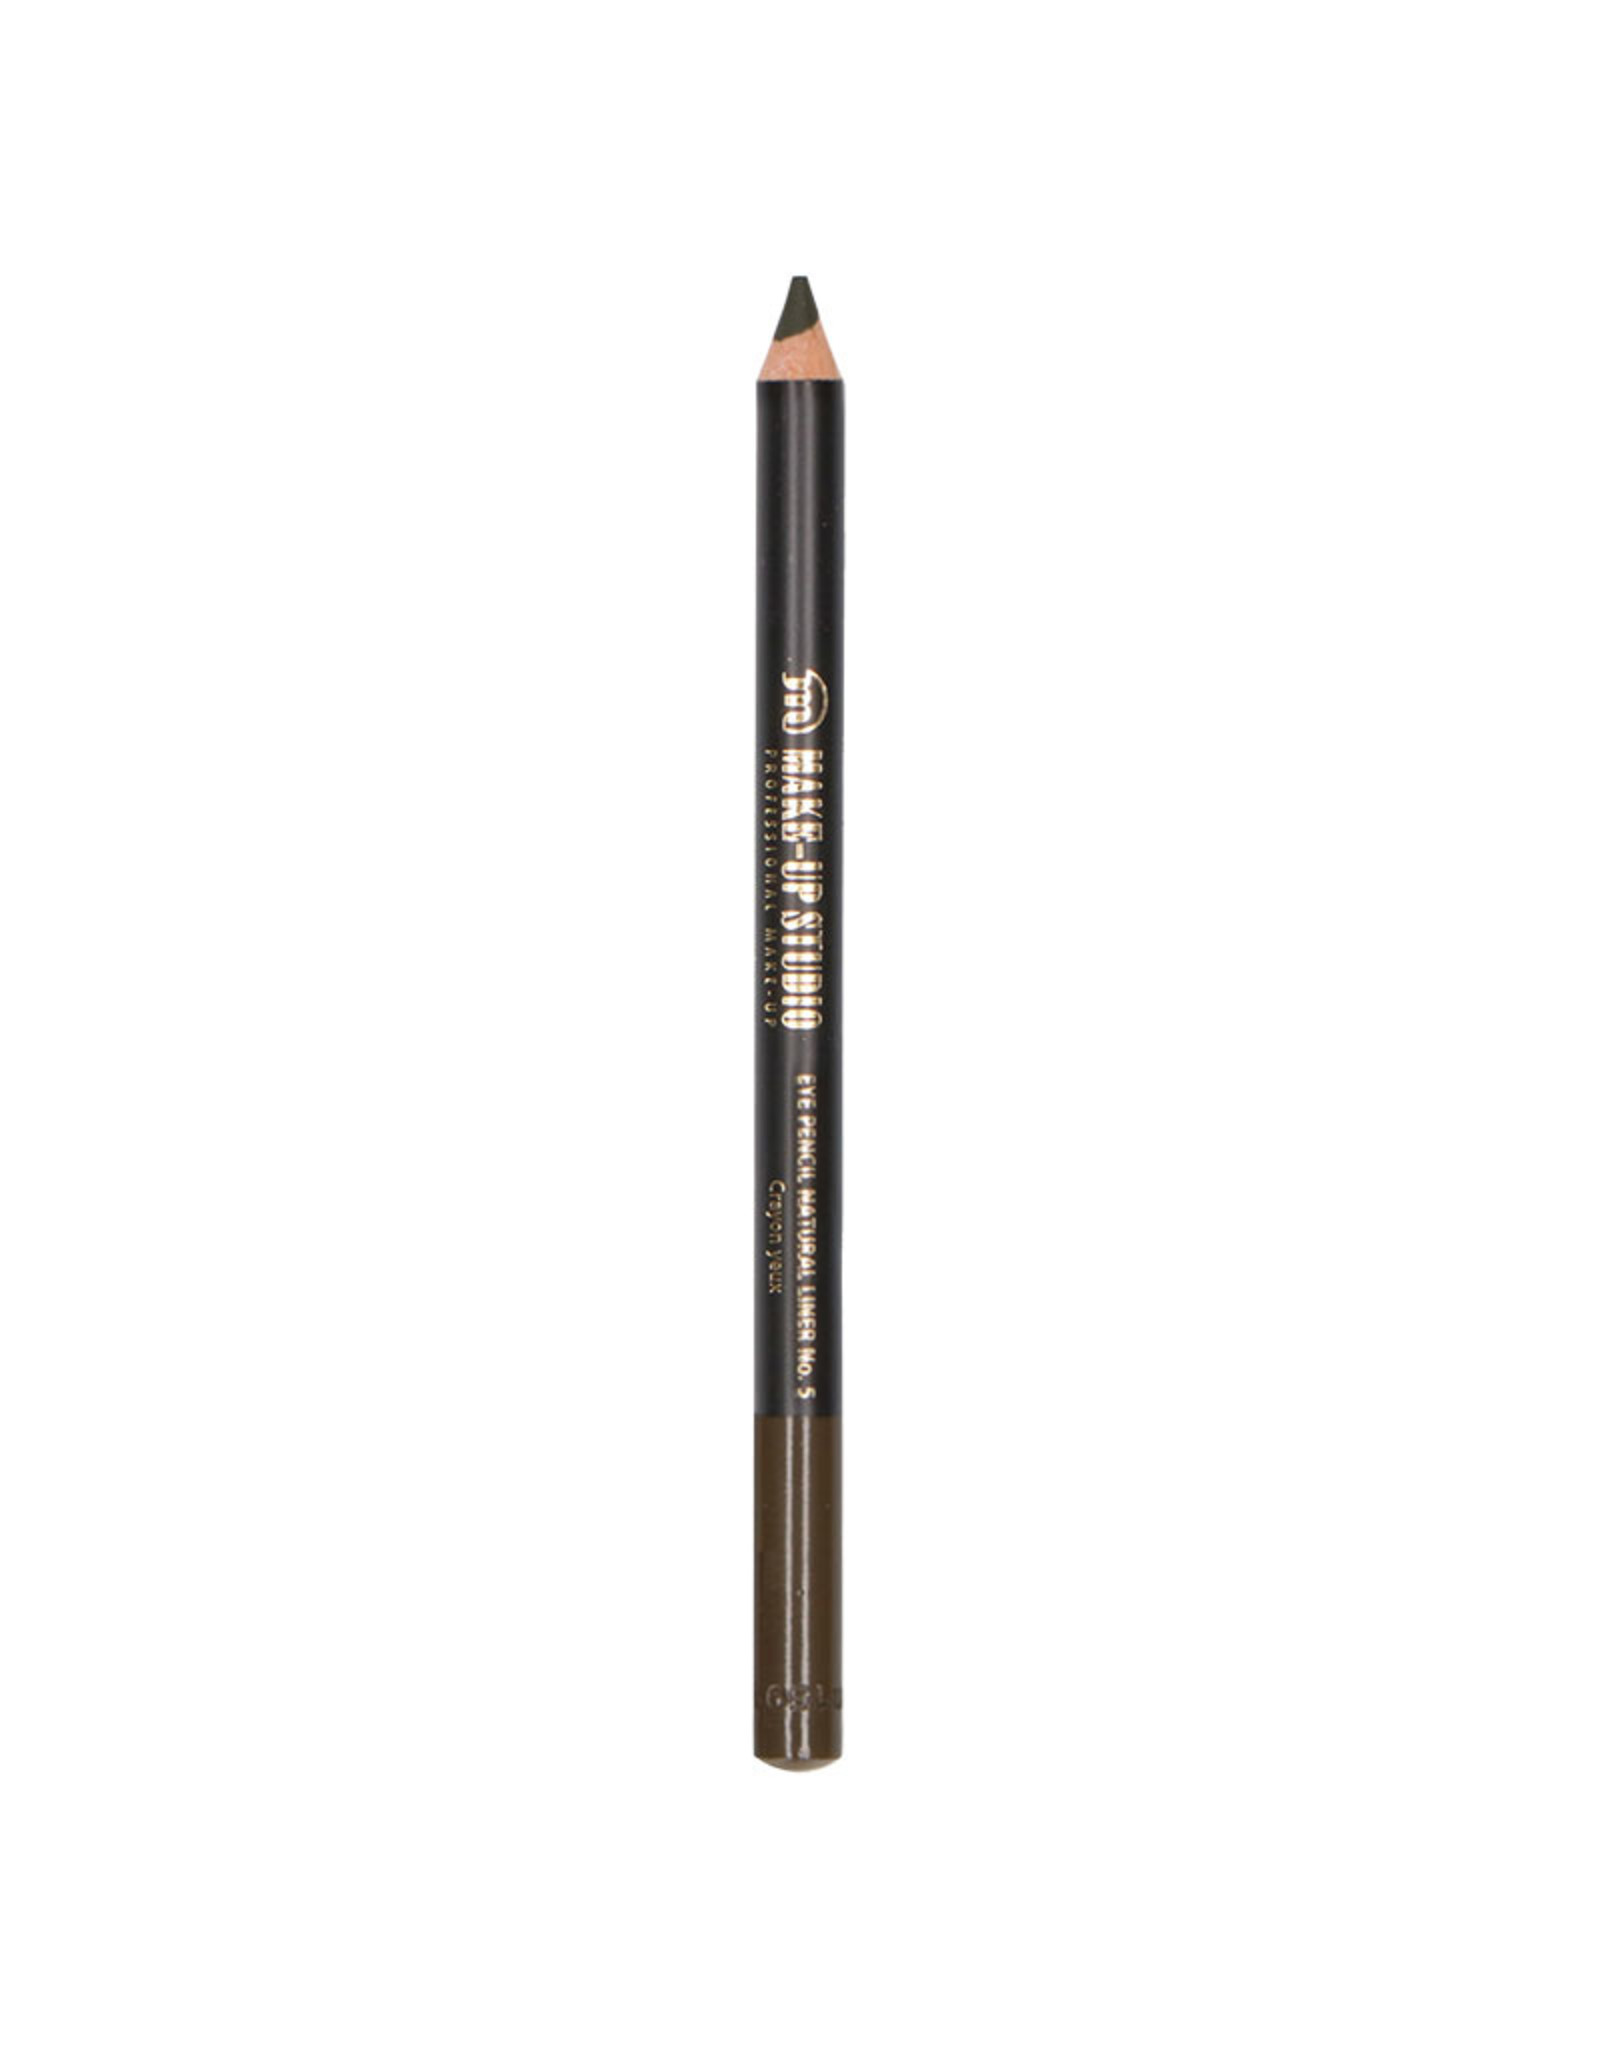 MAKE-UP STUDIO NATURAL LINER PENCIL 5